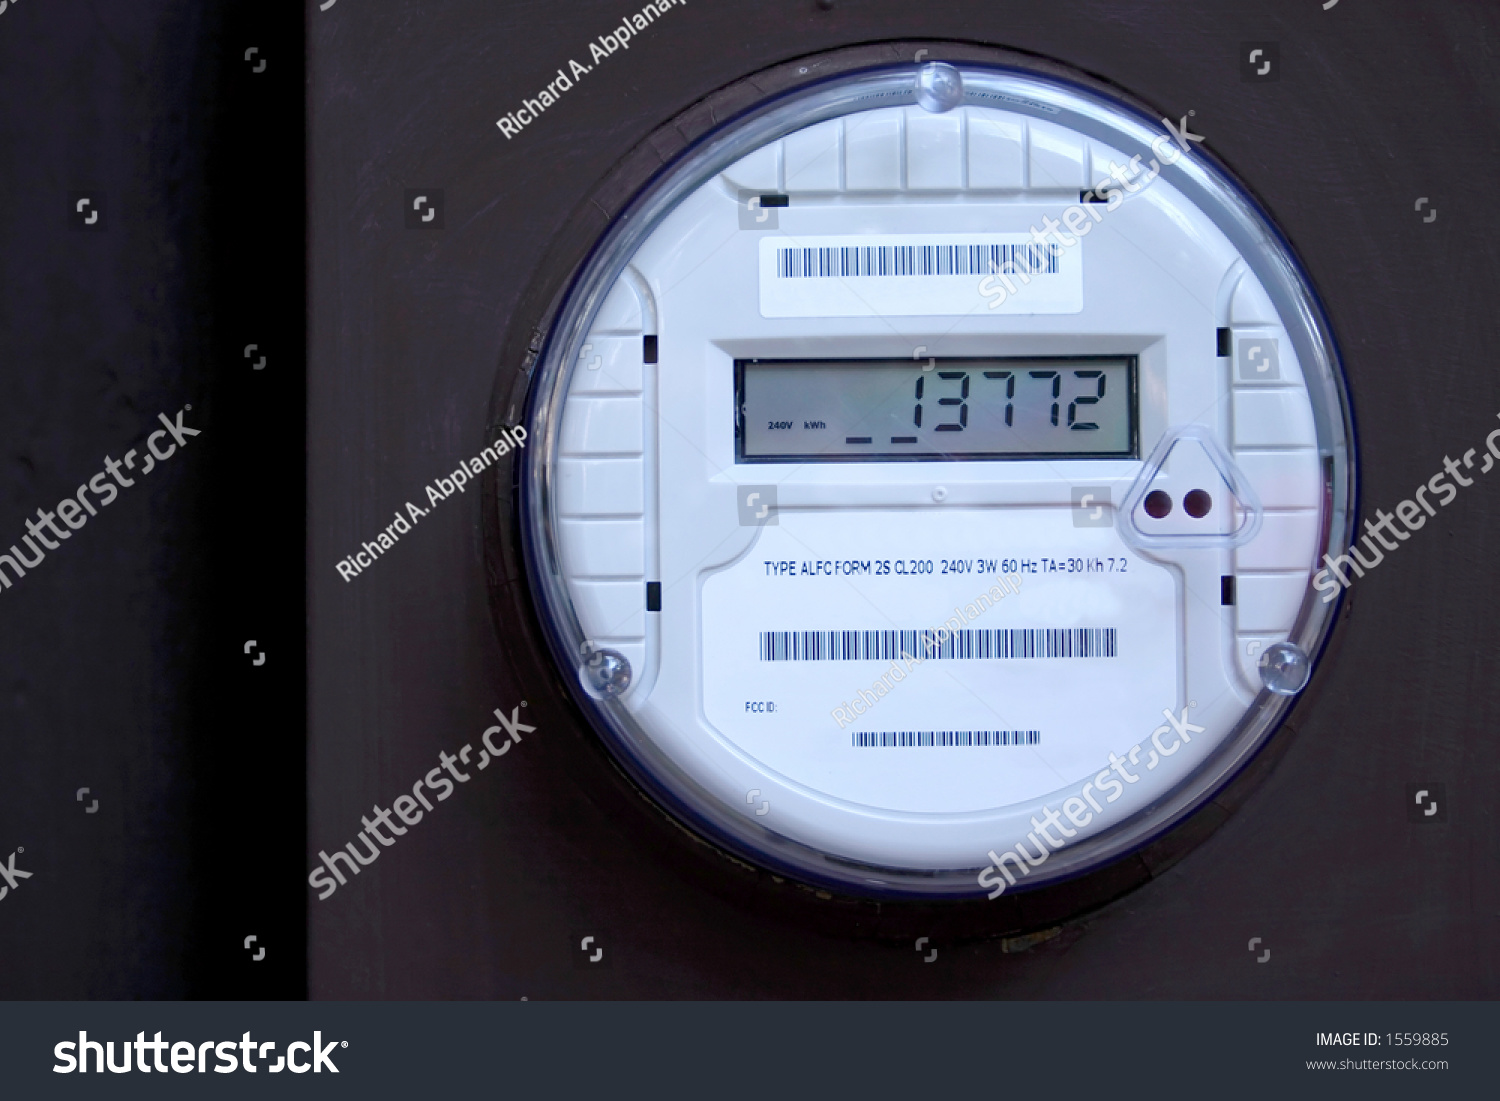 Digital Electric Meter : Digital electric residential meter stock photo